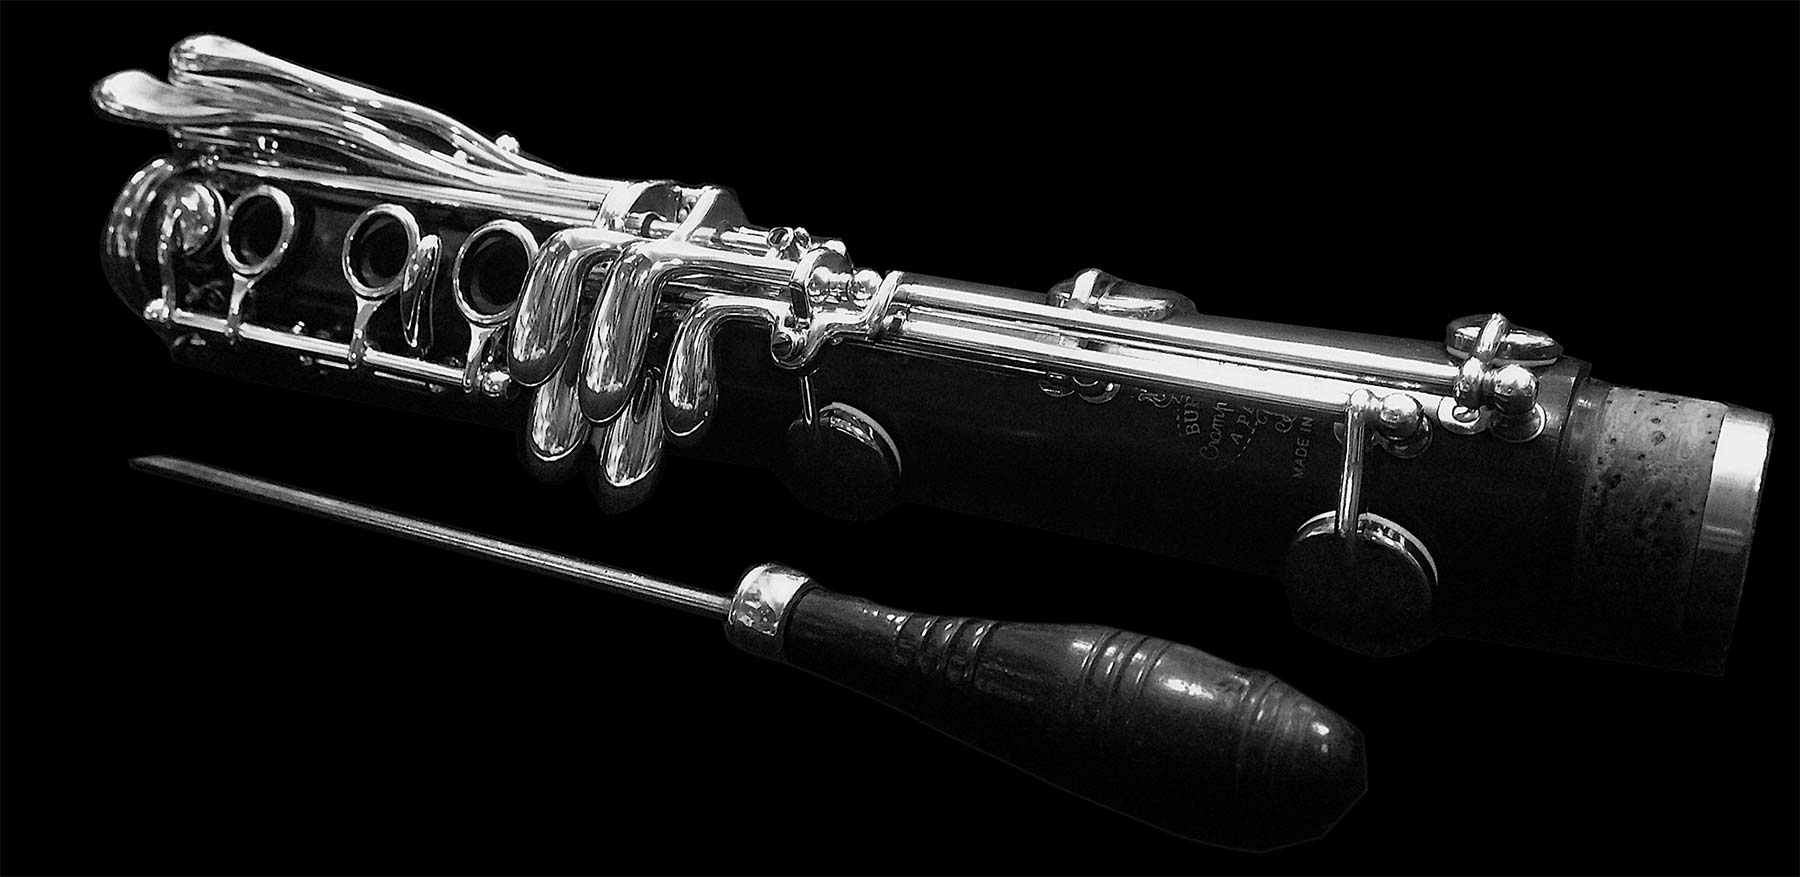 Buy Clarinet Buffet Crampon in Paris